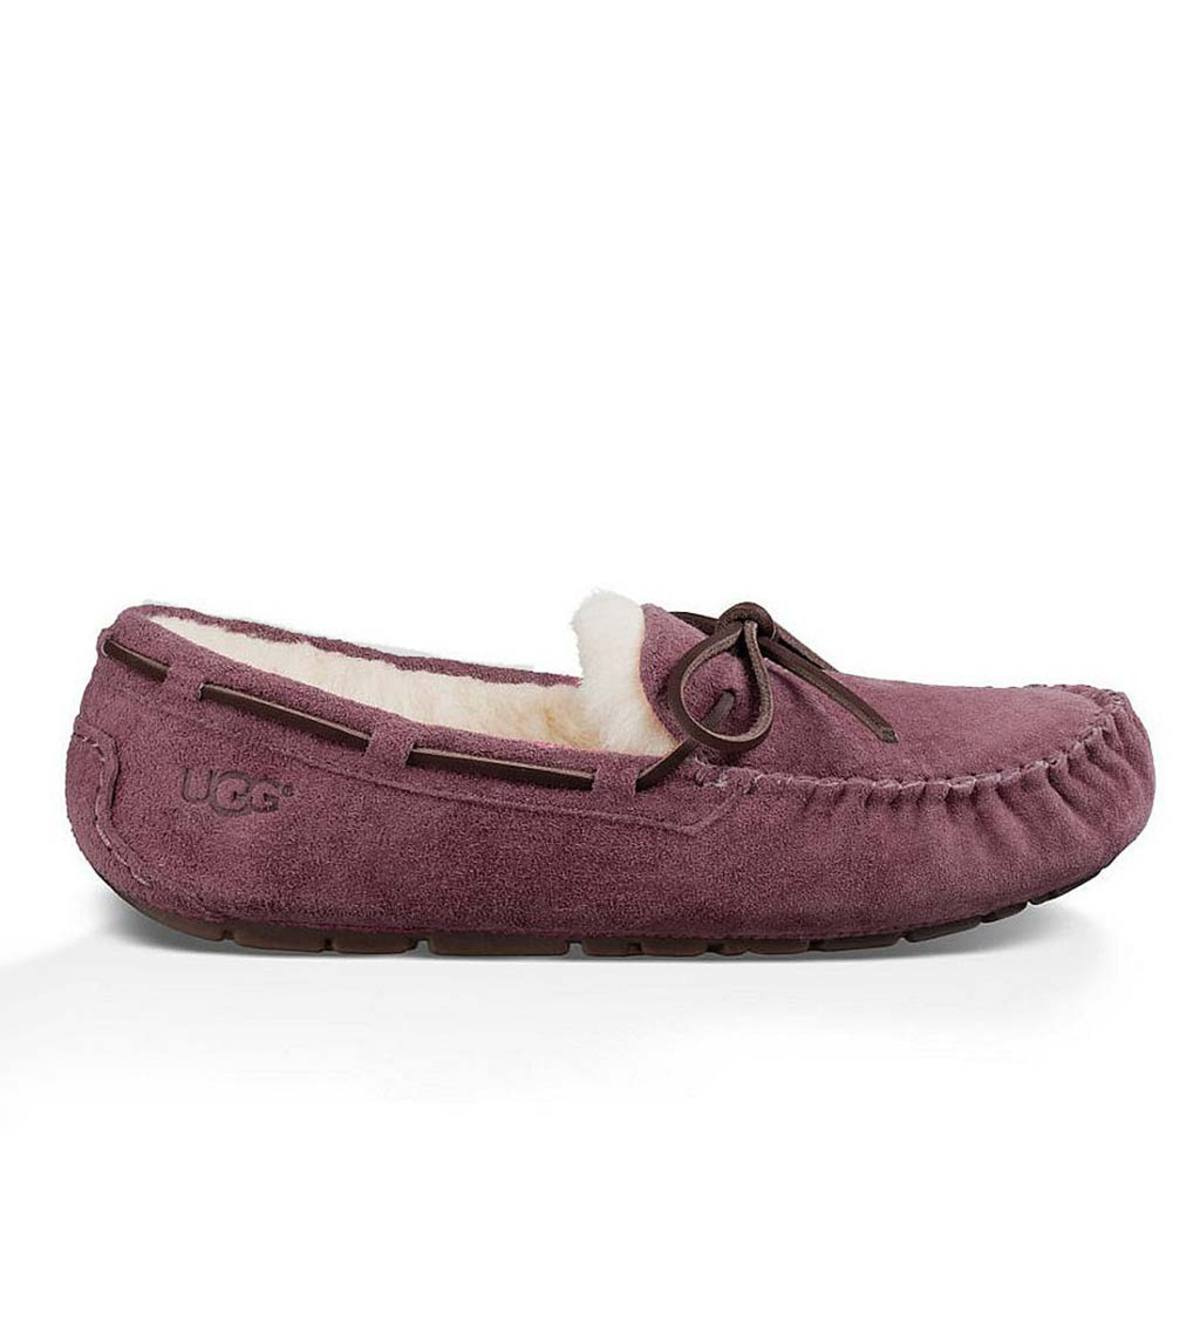 Sale! UGG® Australia Women's Dakota Moccasin Slippers